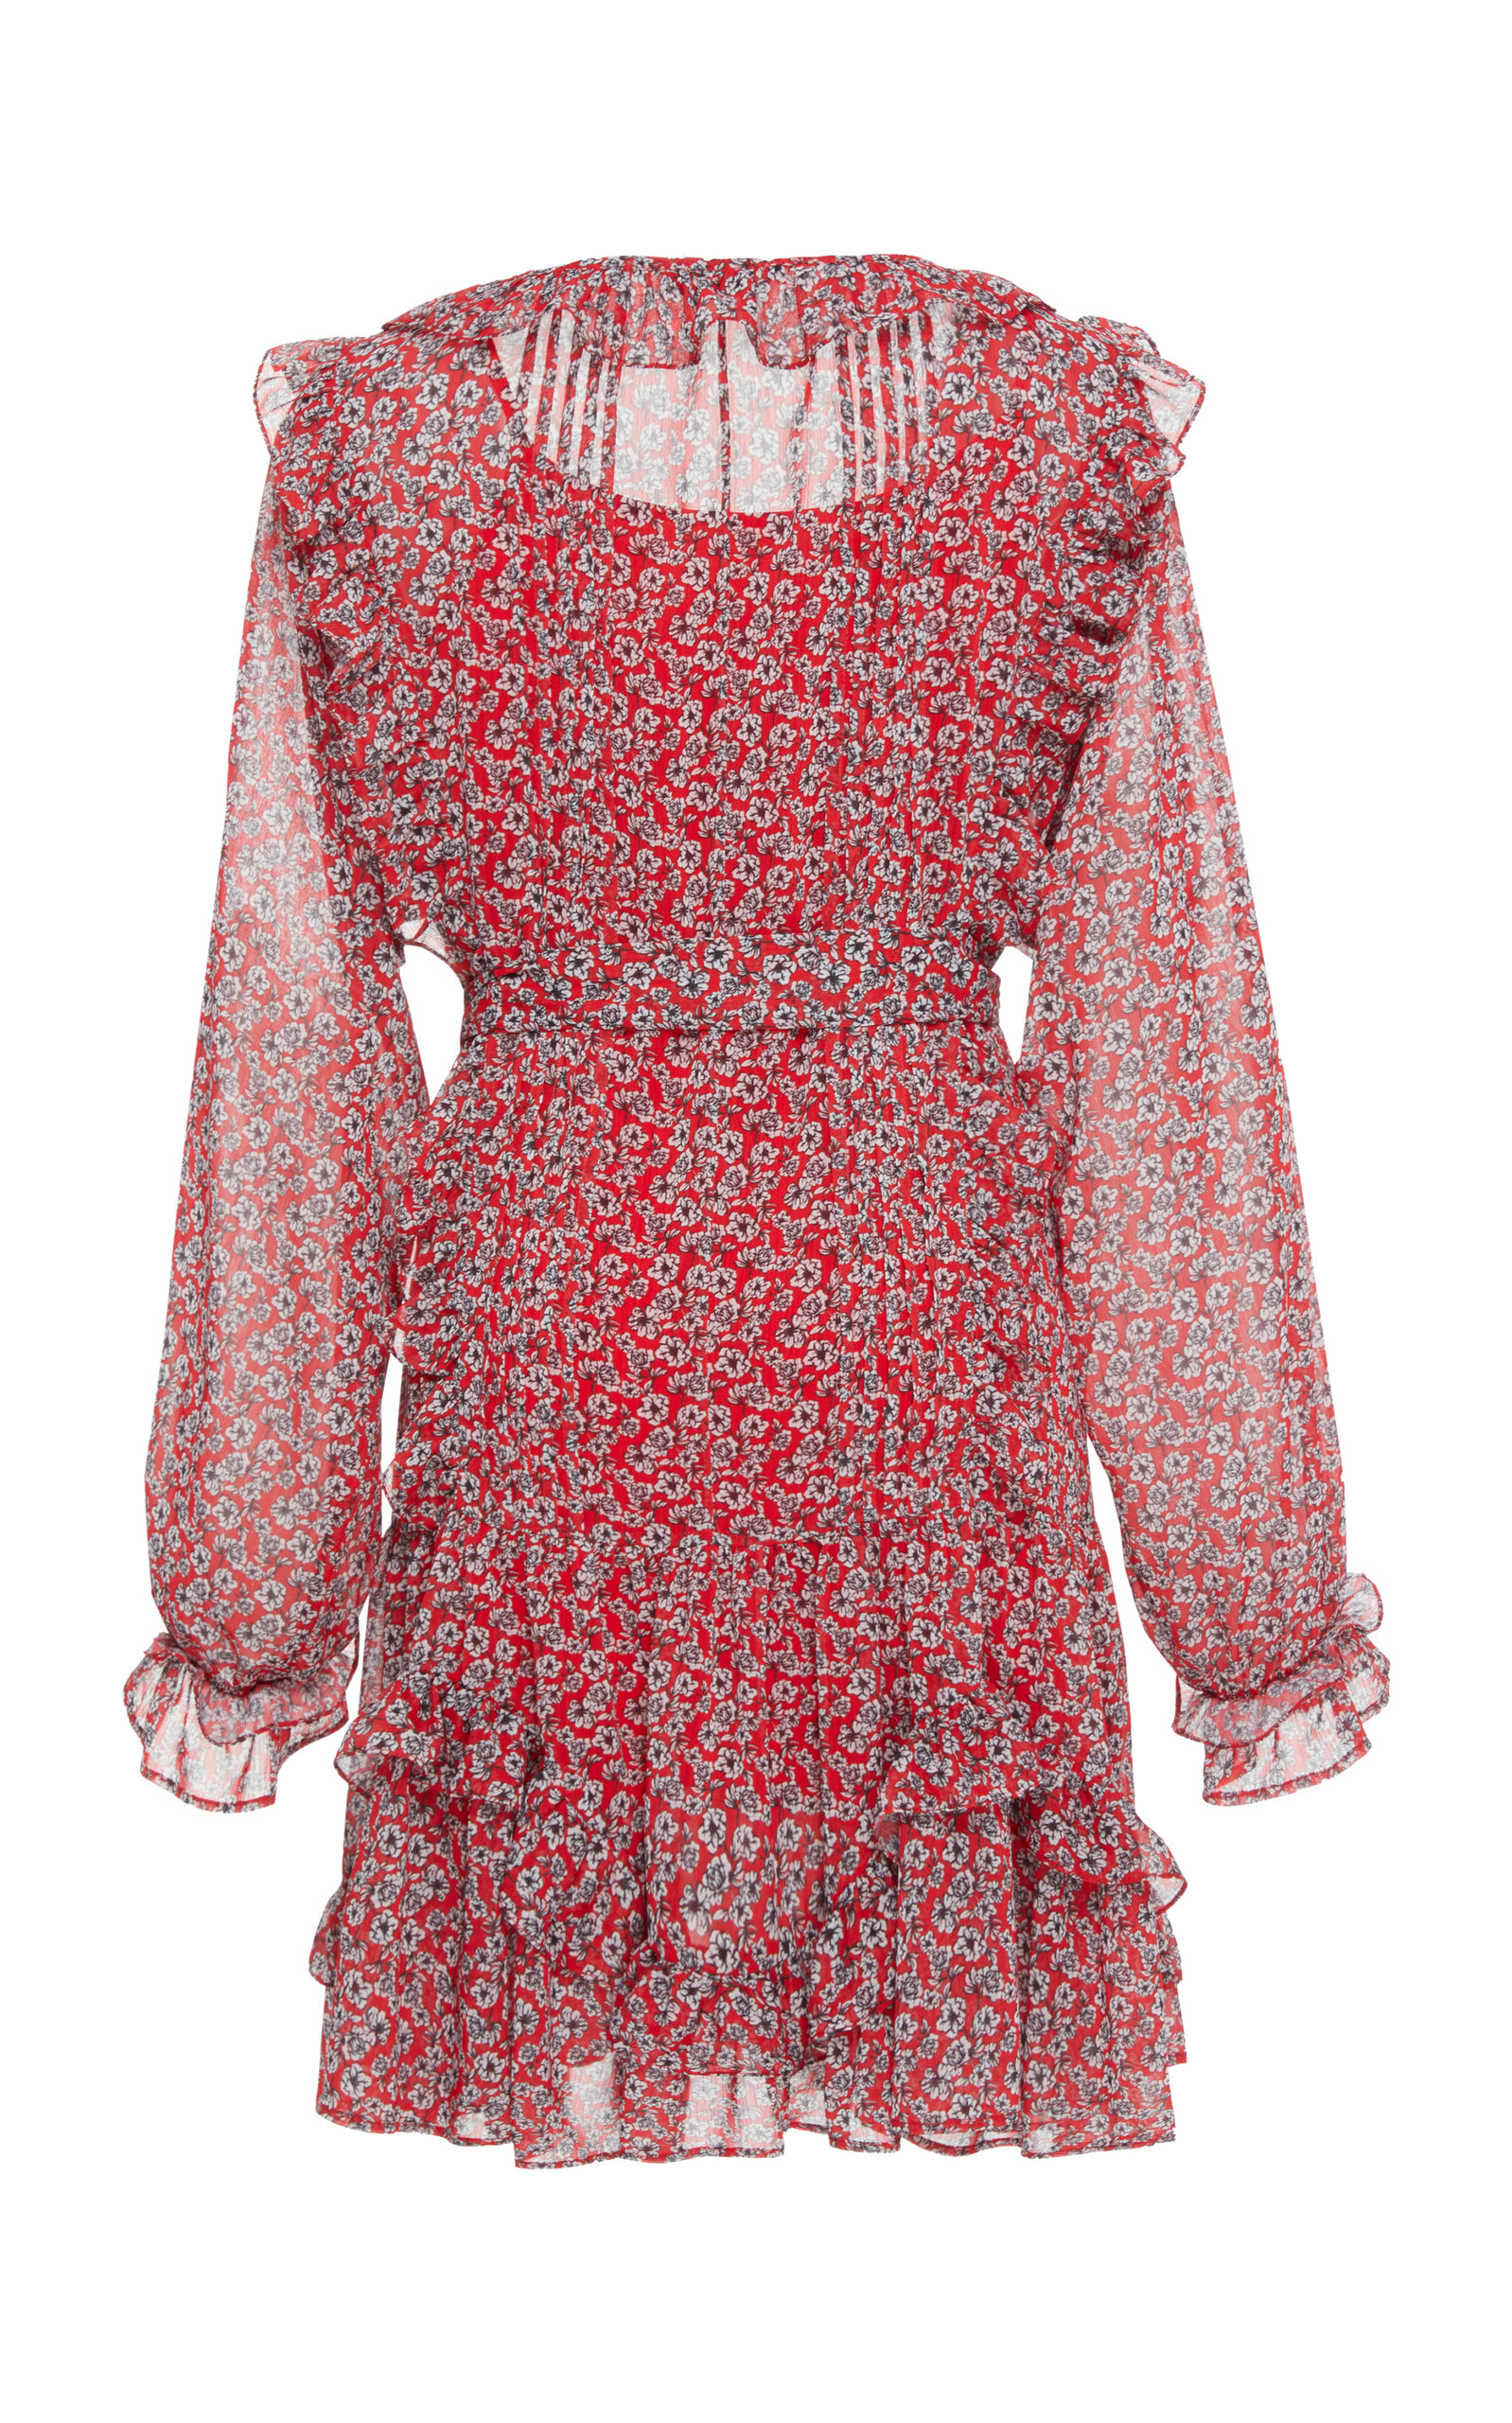 Everett Print Mini Dress Marissa Webb zraEDC7q